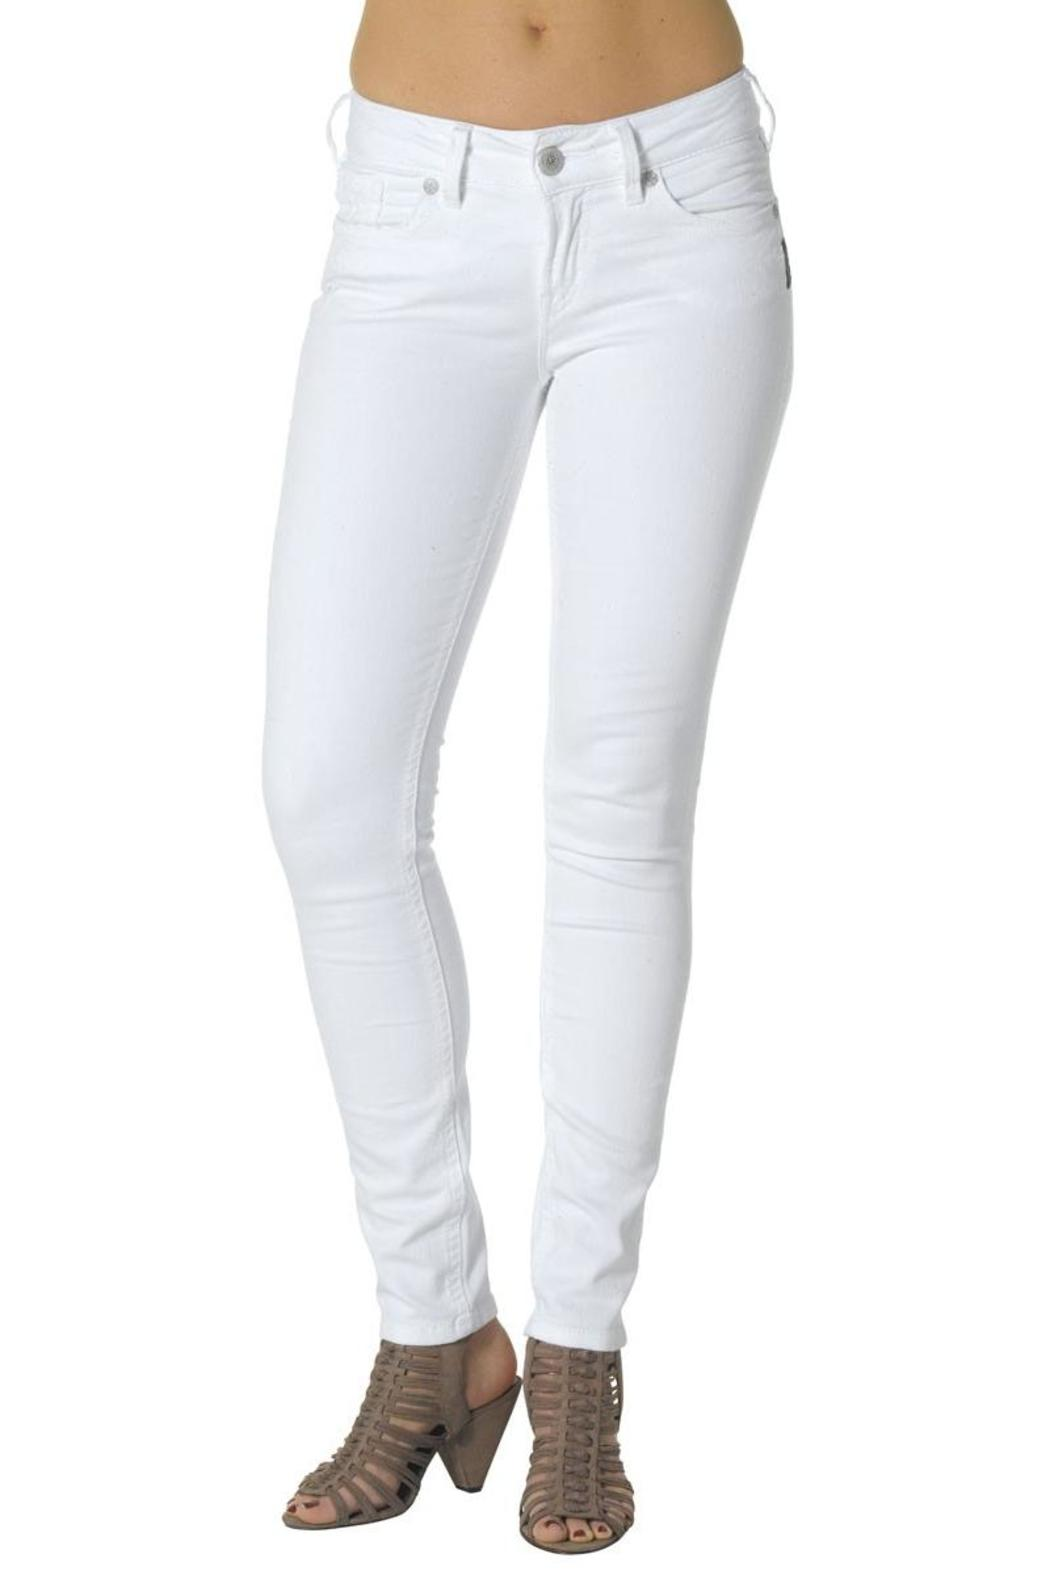 Shop Cavender's women's jeans and pants on sale today. Find popular western wear brands and styles online at a great discount. Free shipping on women's jeans and pants orders over $